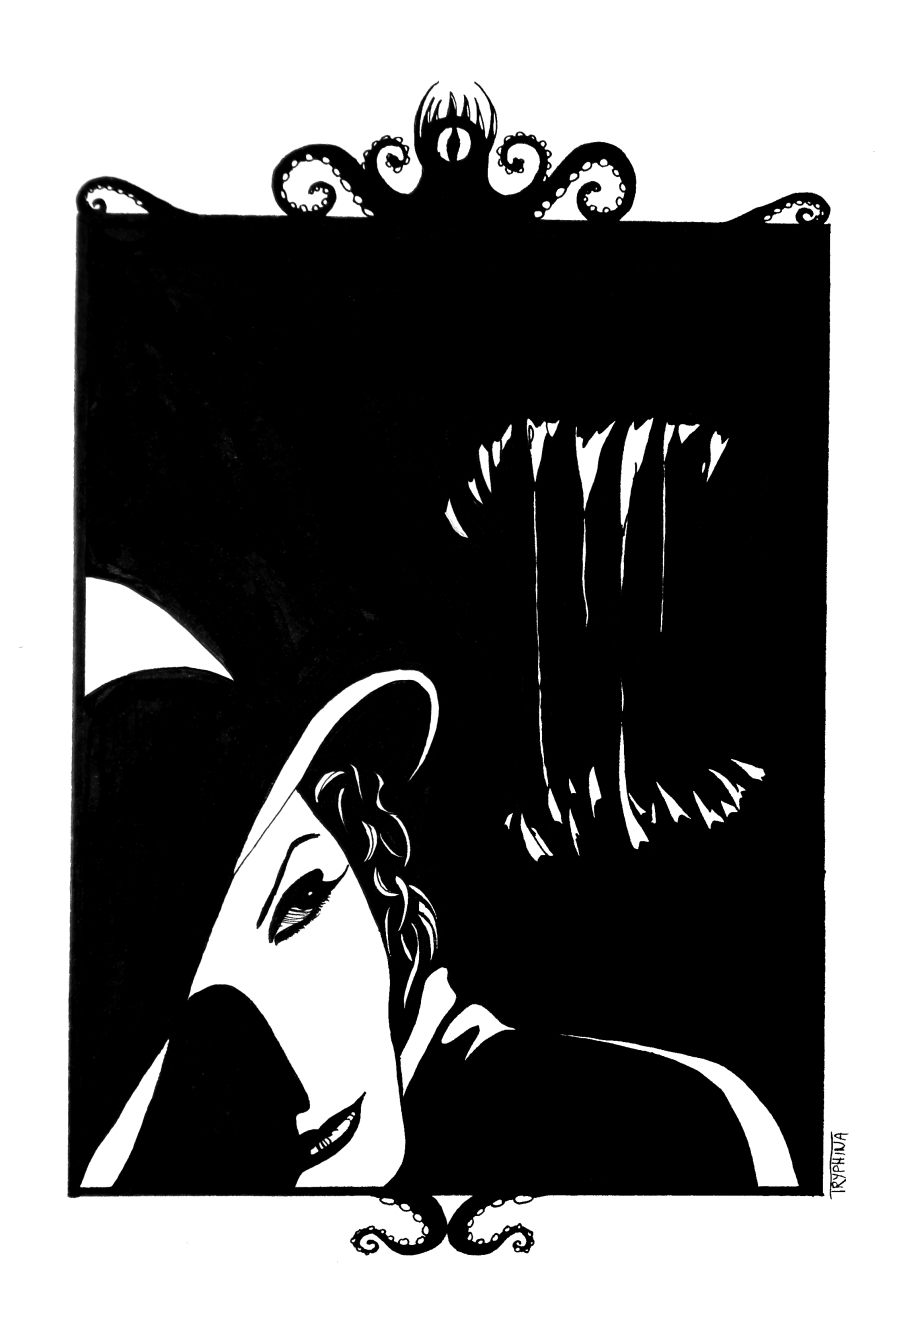 Ink painting of a woman looking over her shoulder, behind her a monster's mouth opens.